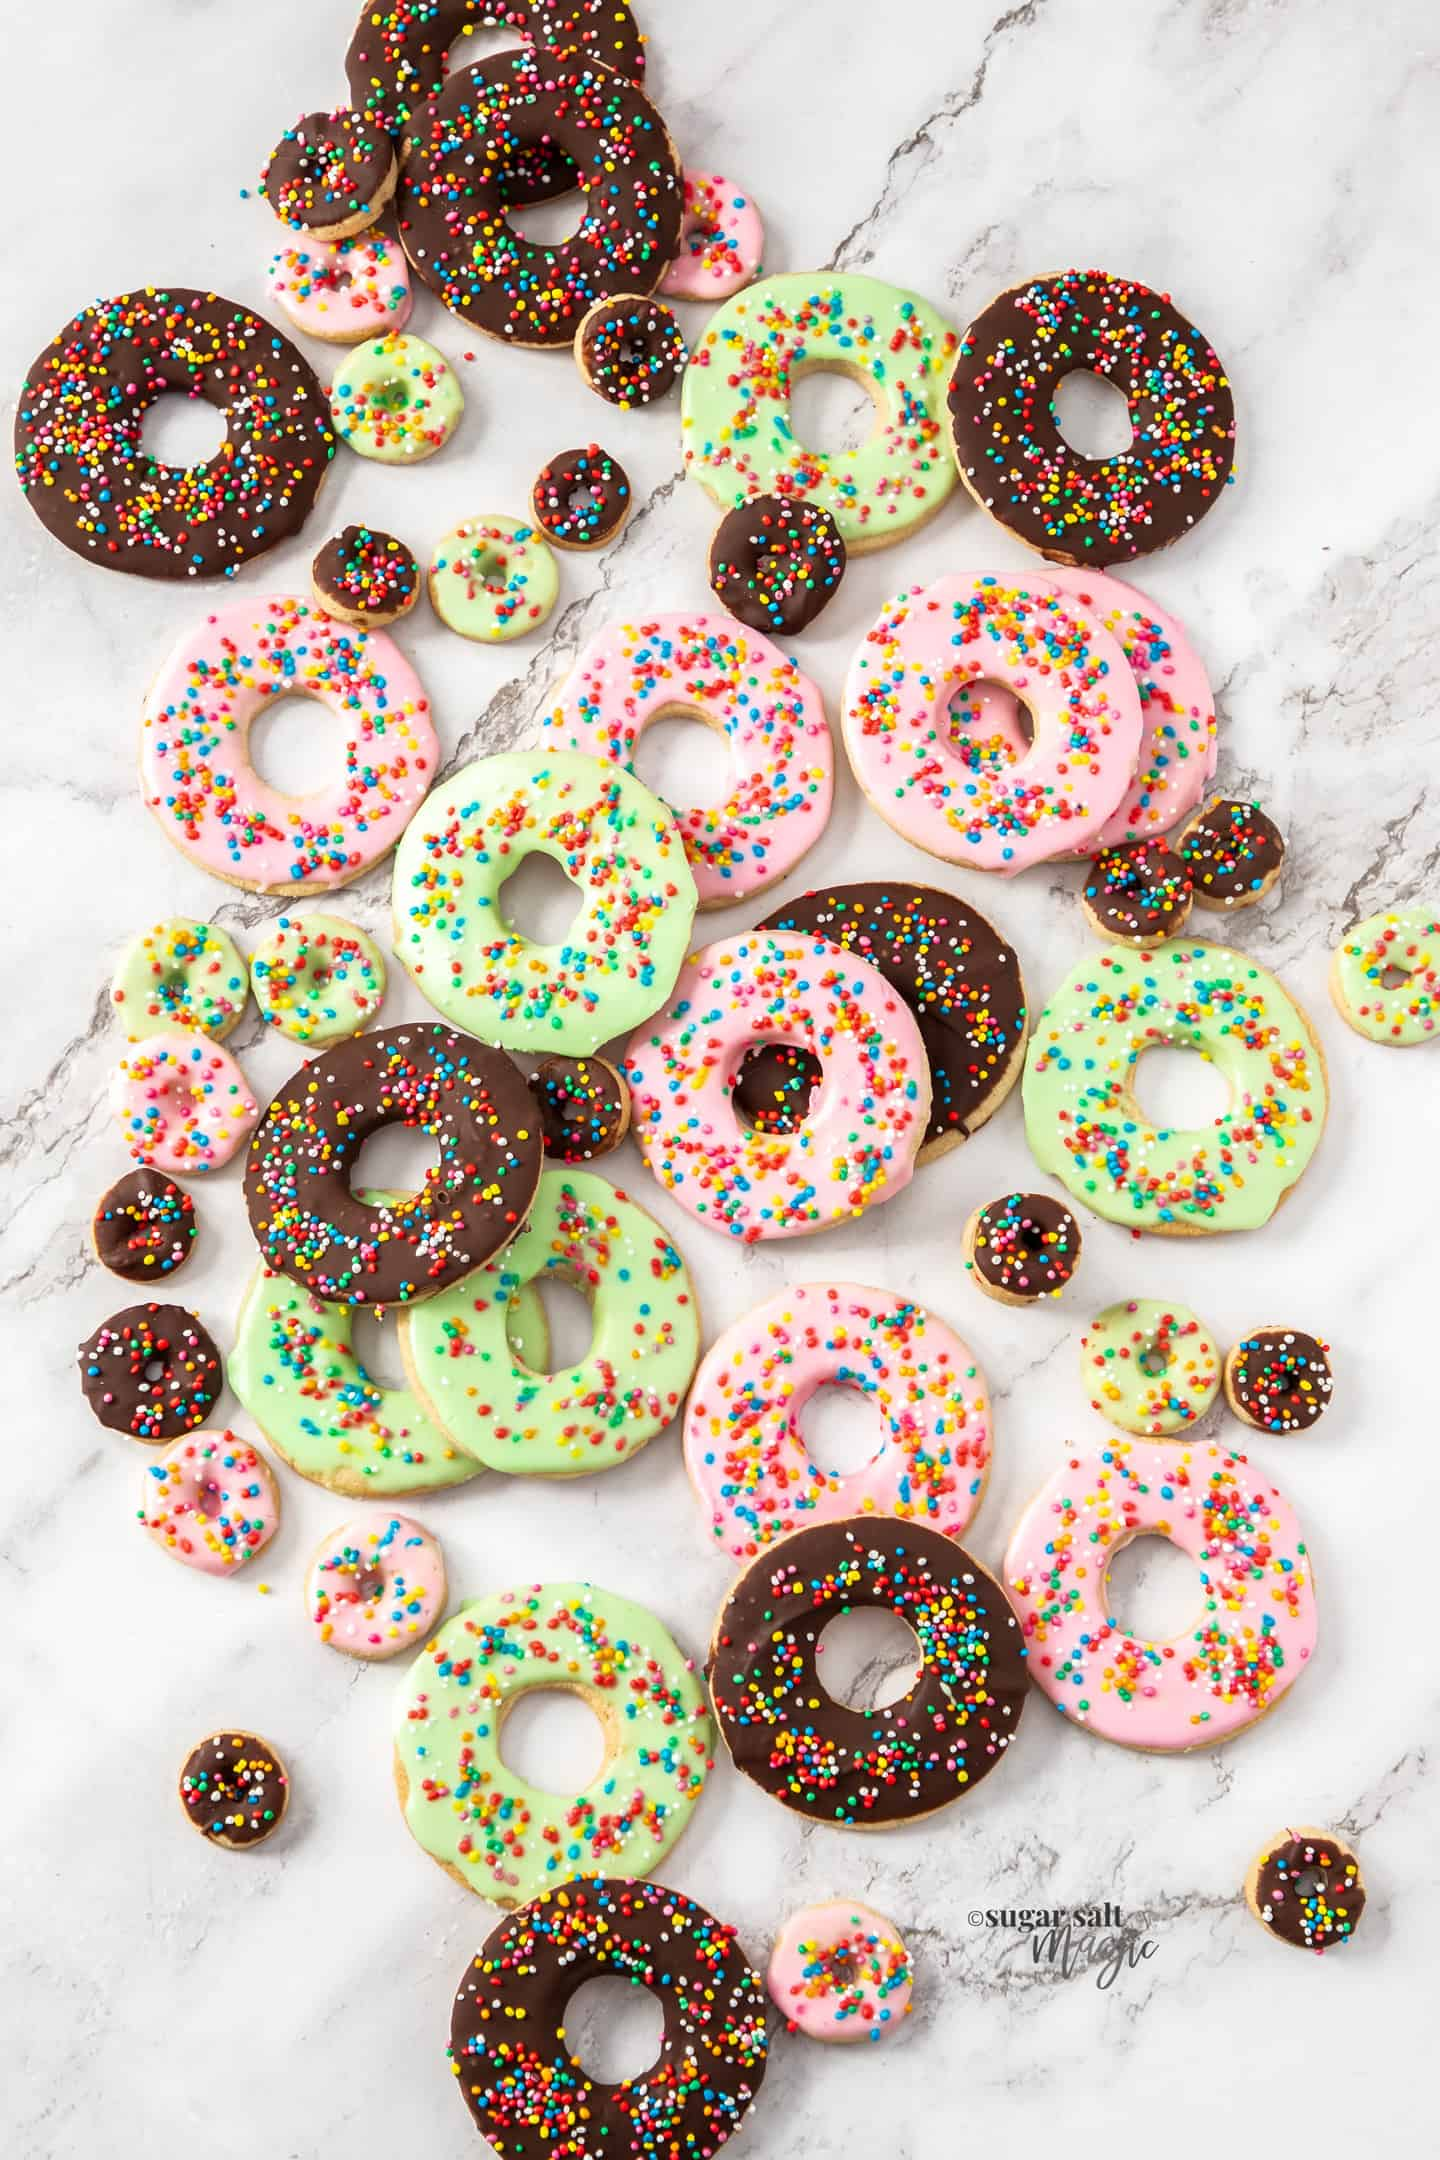 A batch of donut sugar cookies on a marble surface.